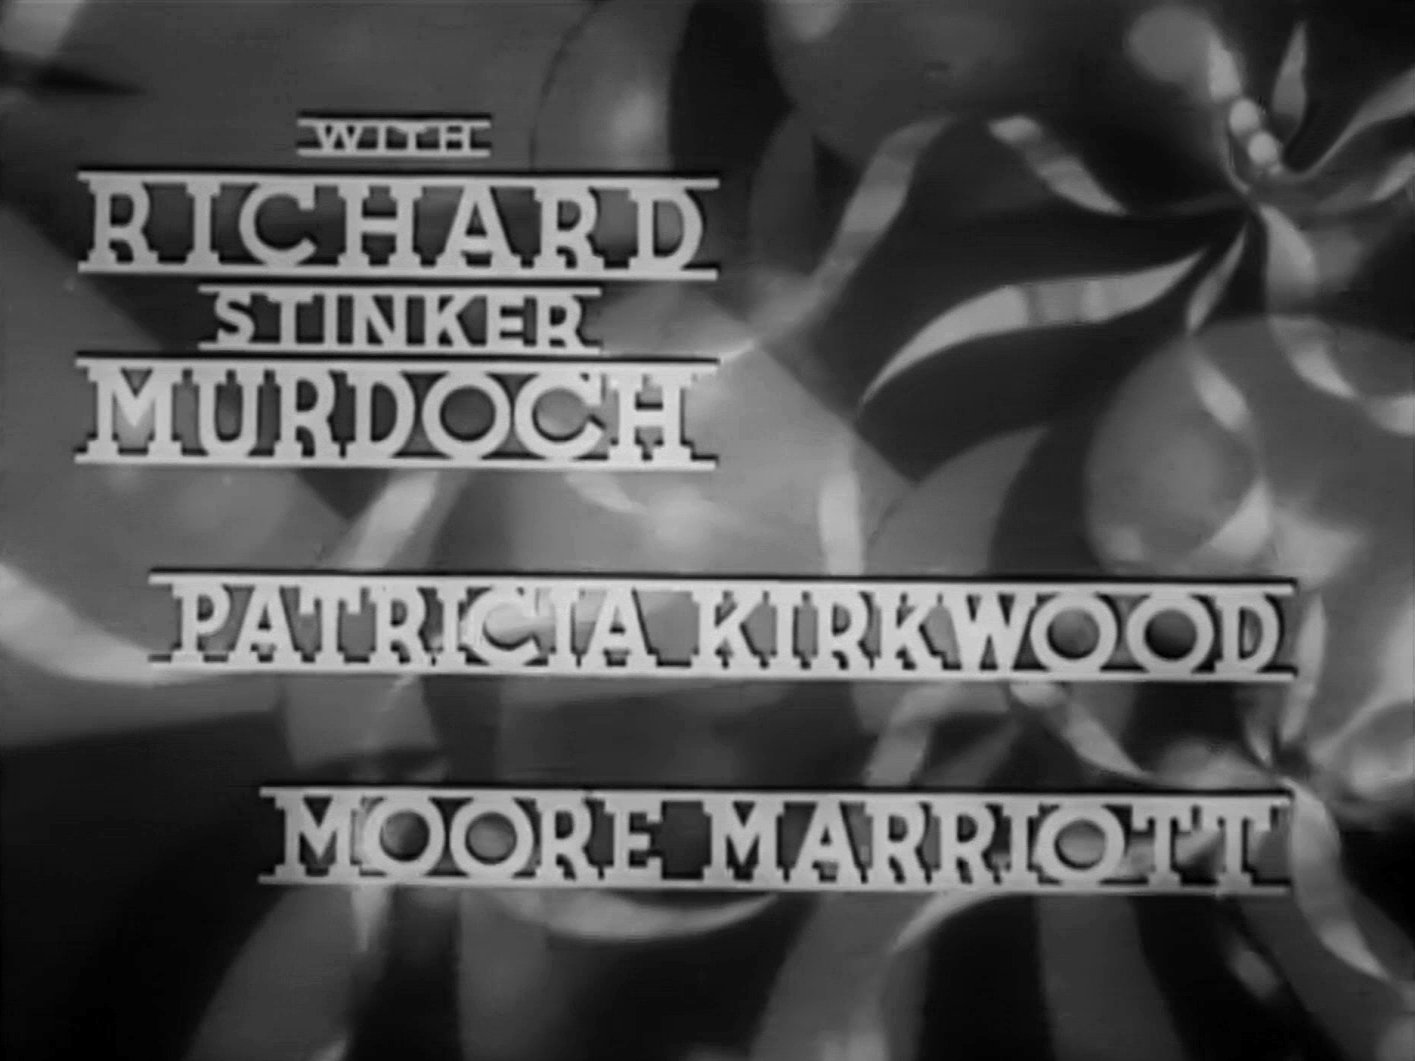 Main title from Band Waggon (1940) (7). With Richard 'Stinker' Murdoch, Patricia Kirkwood, Moore Marriott